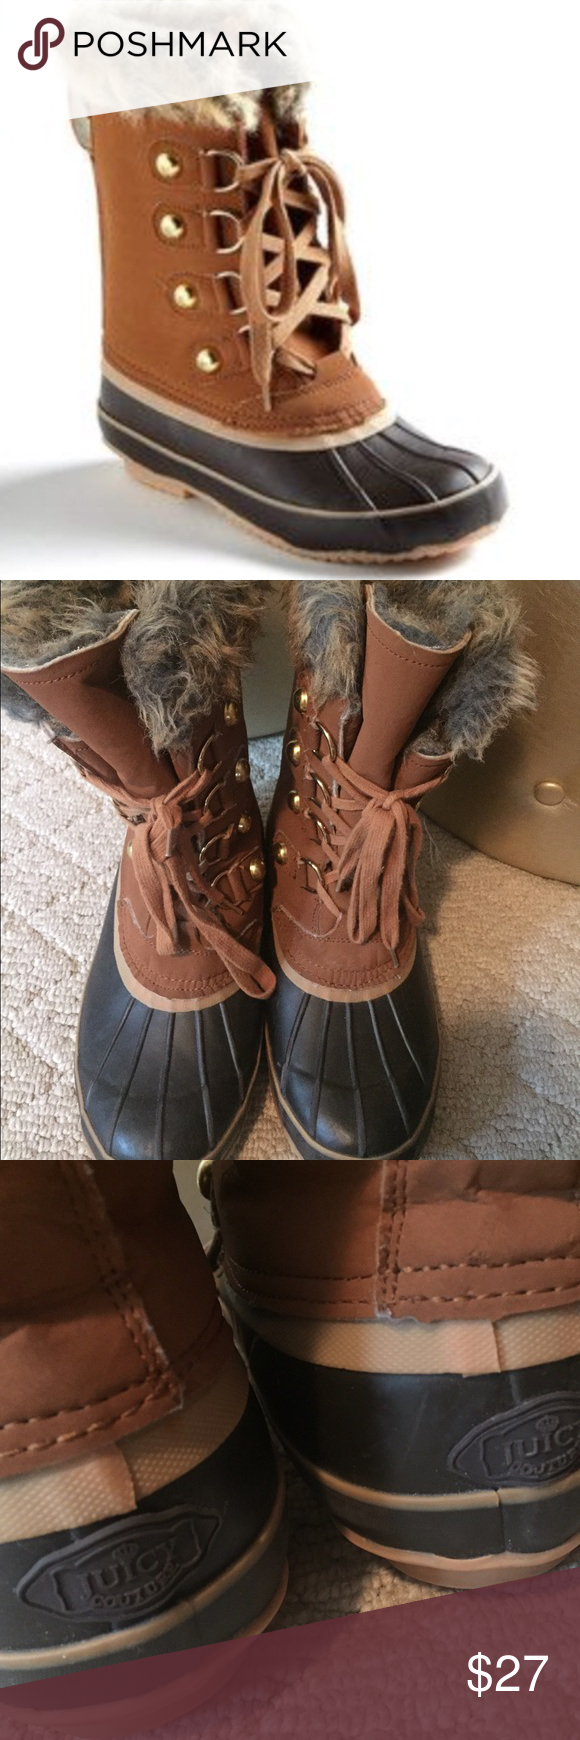 98f3122b80c0 Juicy Couture Fur Lined Duck Boot Snow Boot A terrific option for the cold  months